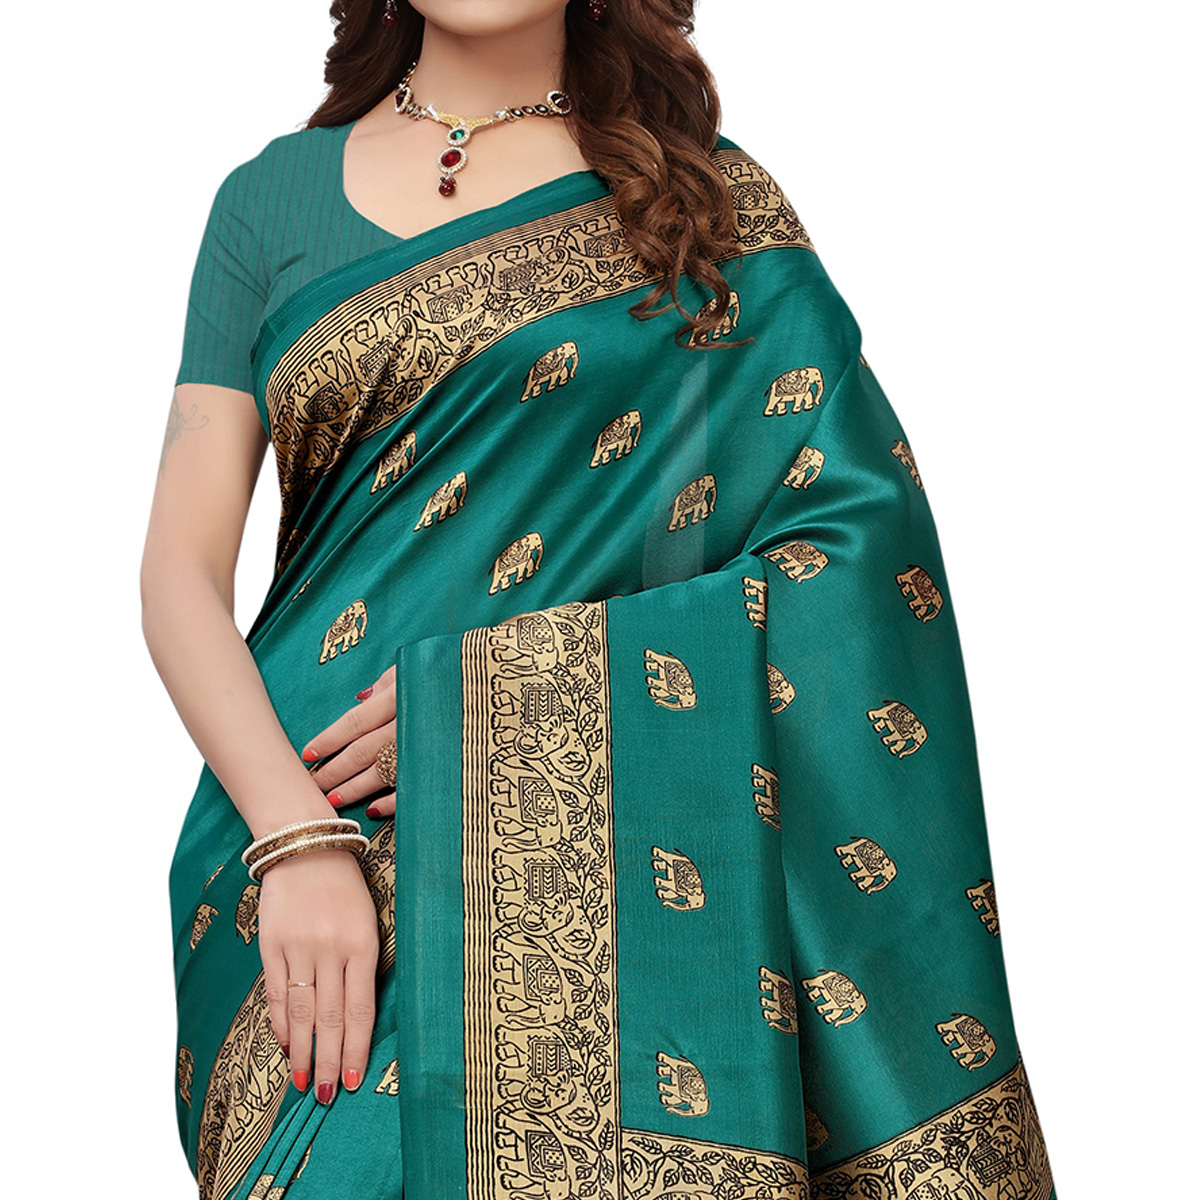 Eye-Catching Turquoise Green Colored Printed Festive Wear Mysore Art Silk Saree